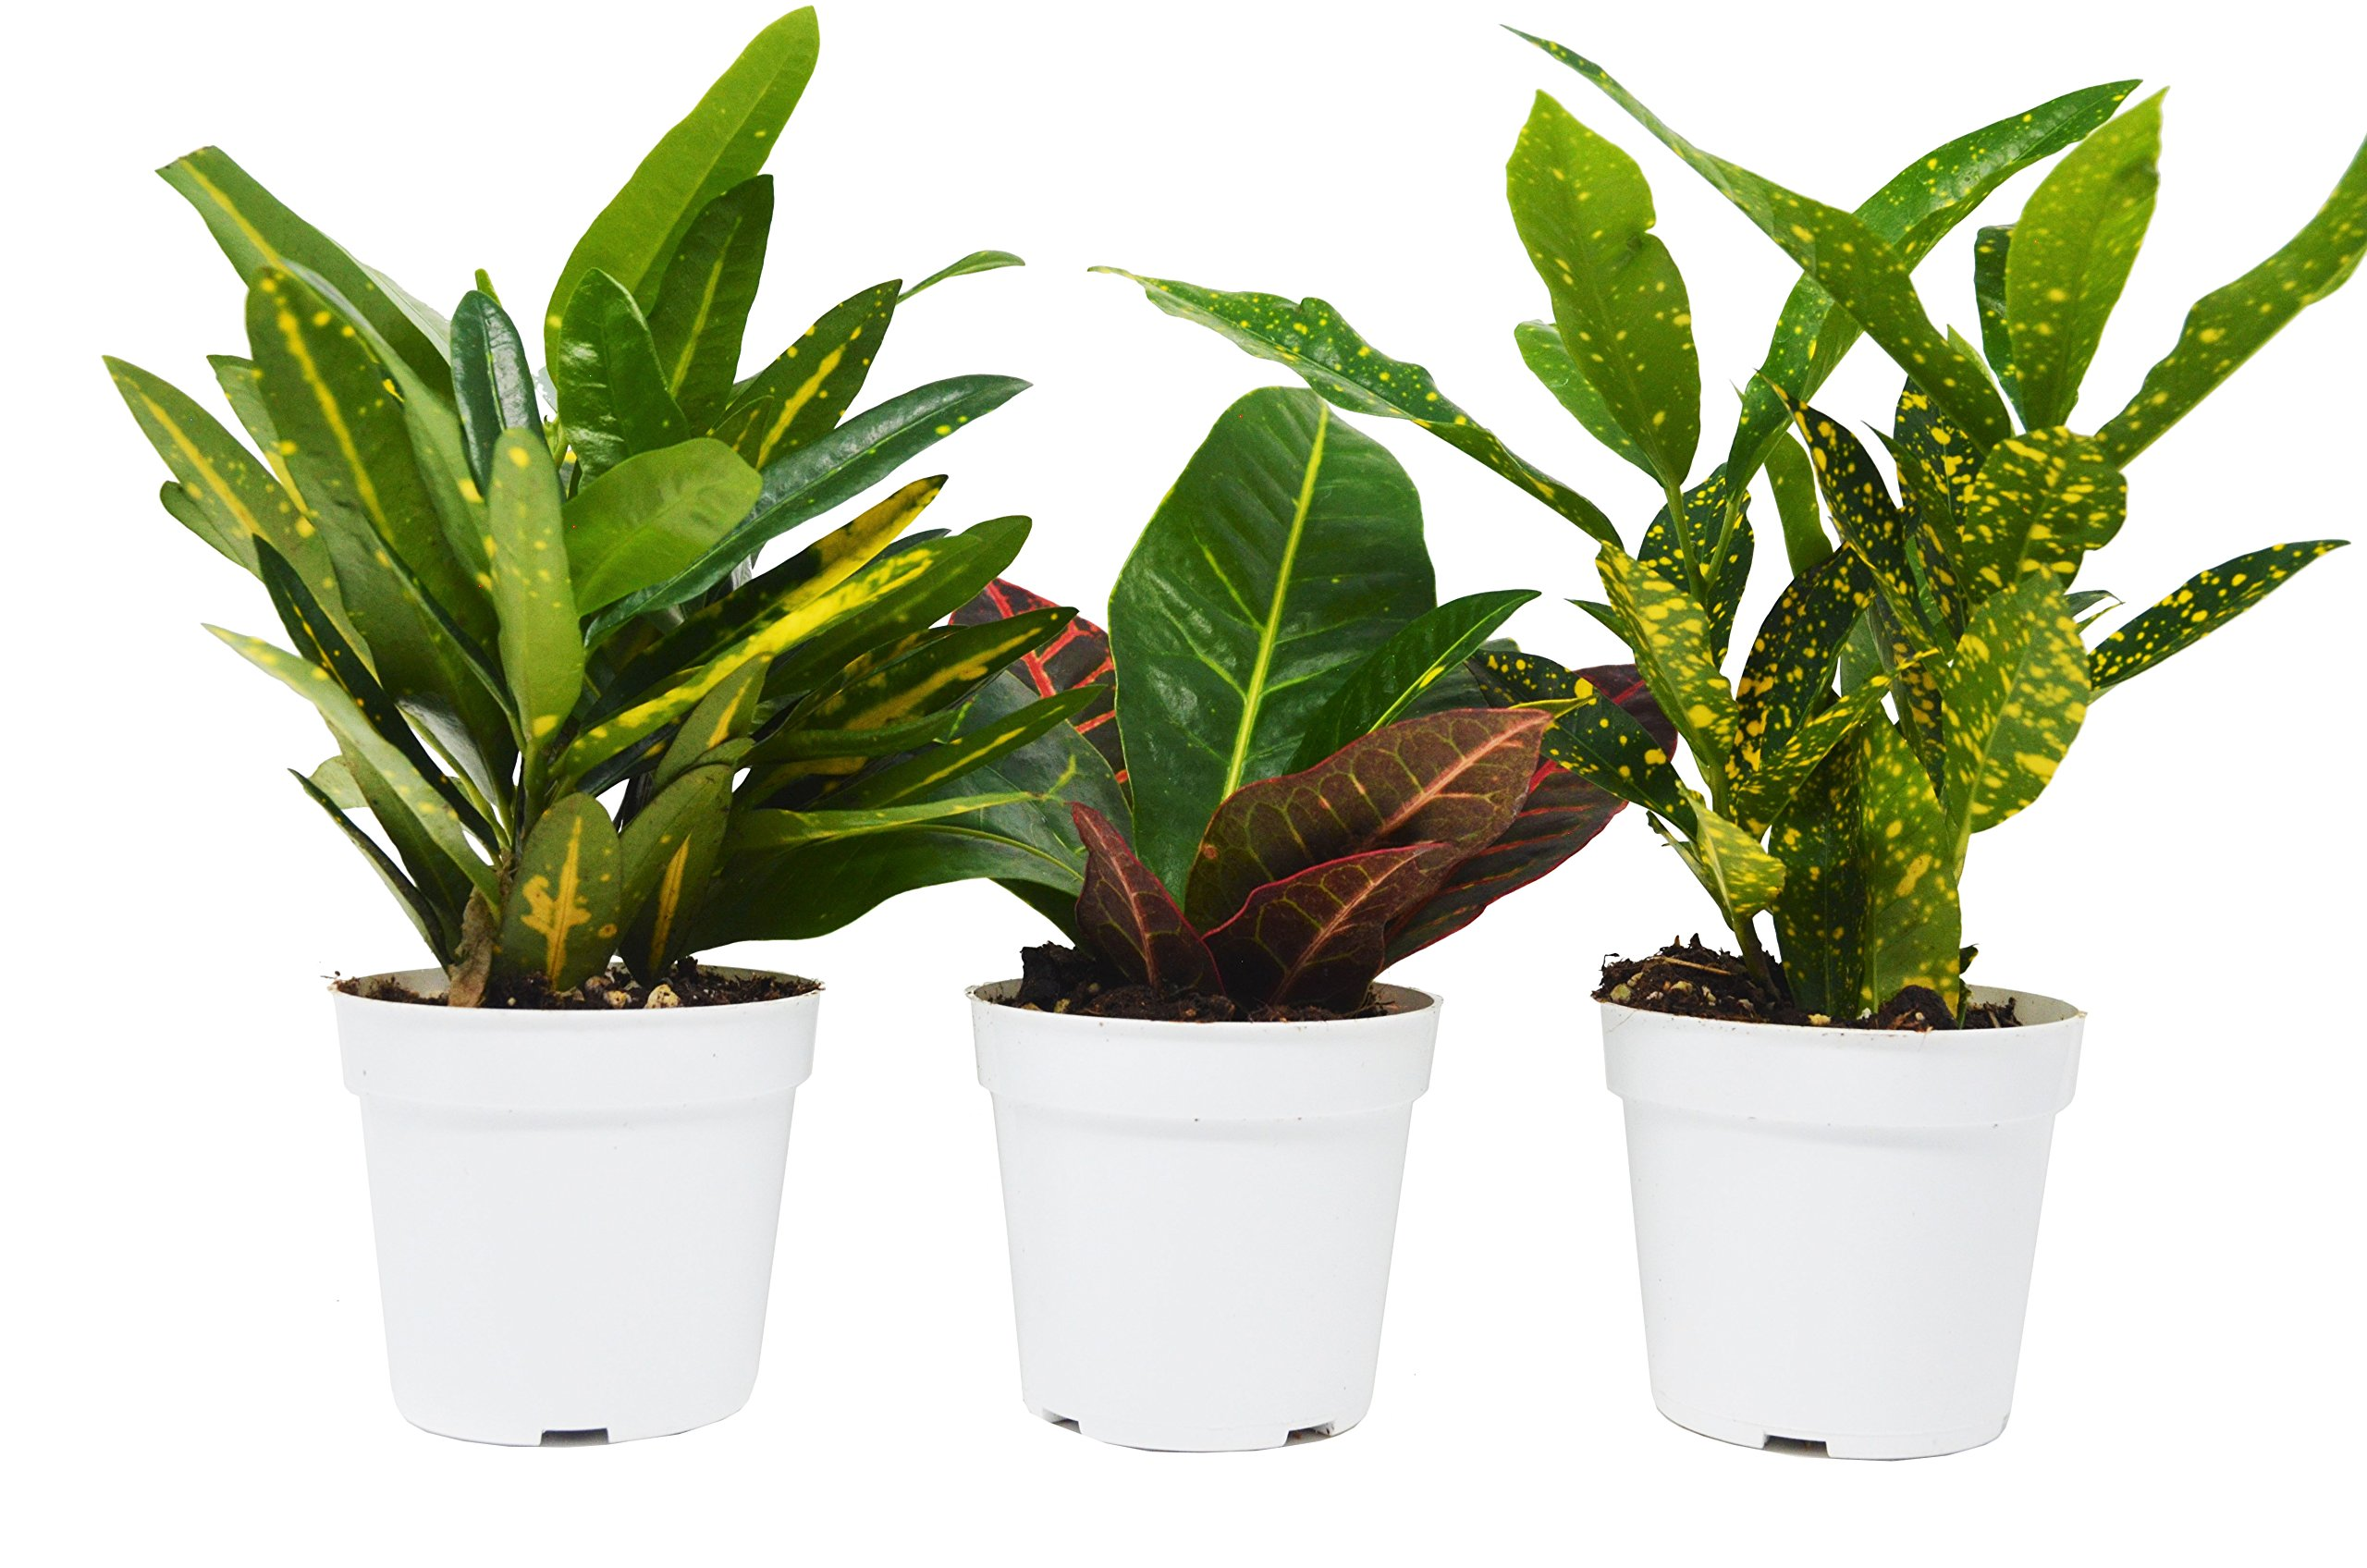 3 Croton Plant Variety Pack - All Different Species - Live Plants - FREE Care Guide - 4'' Pot